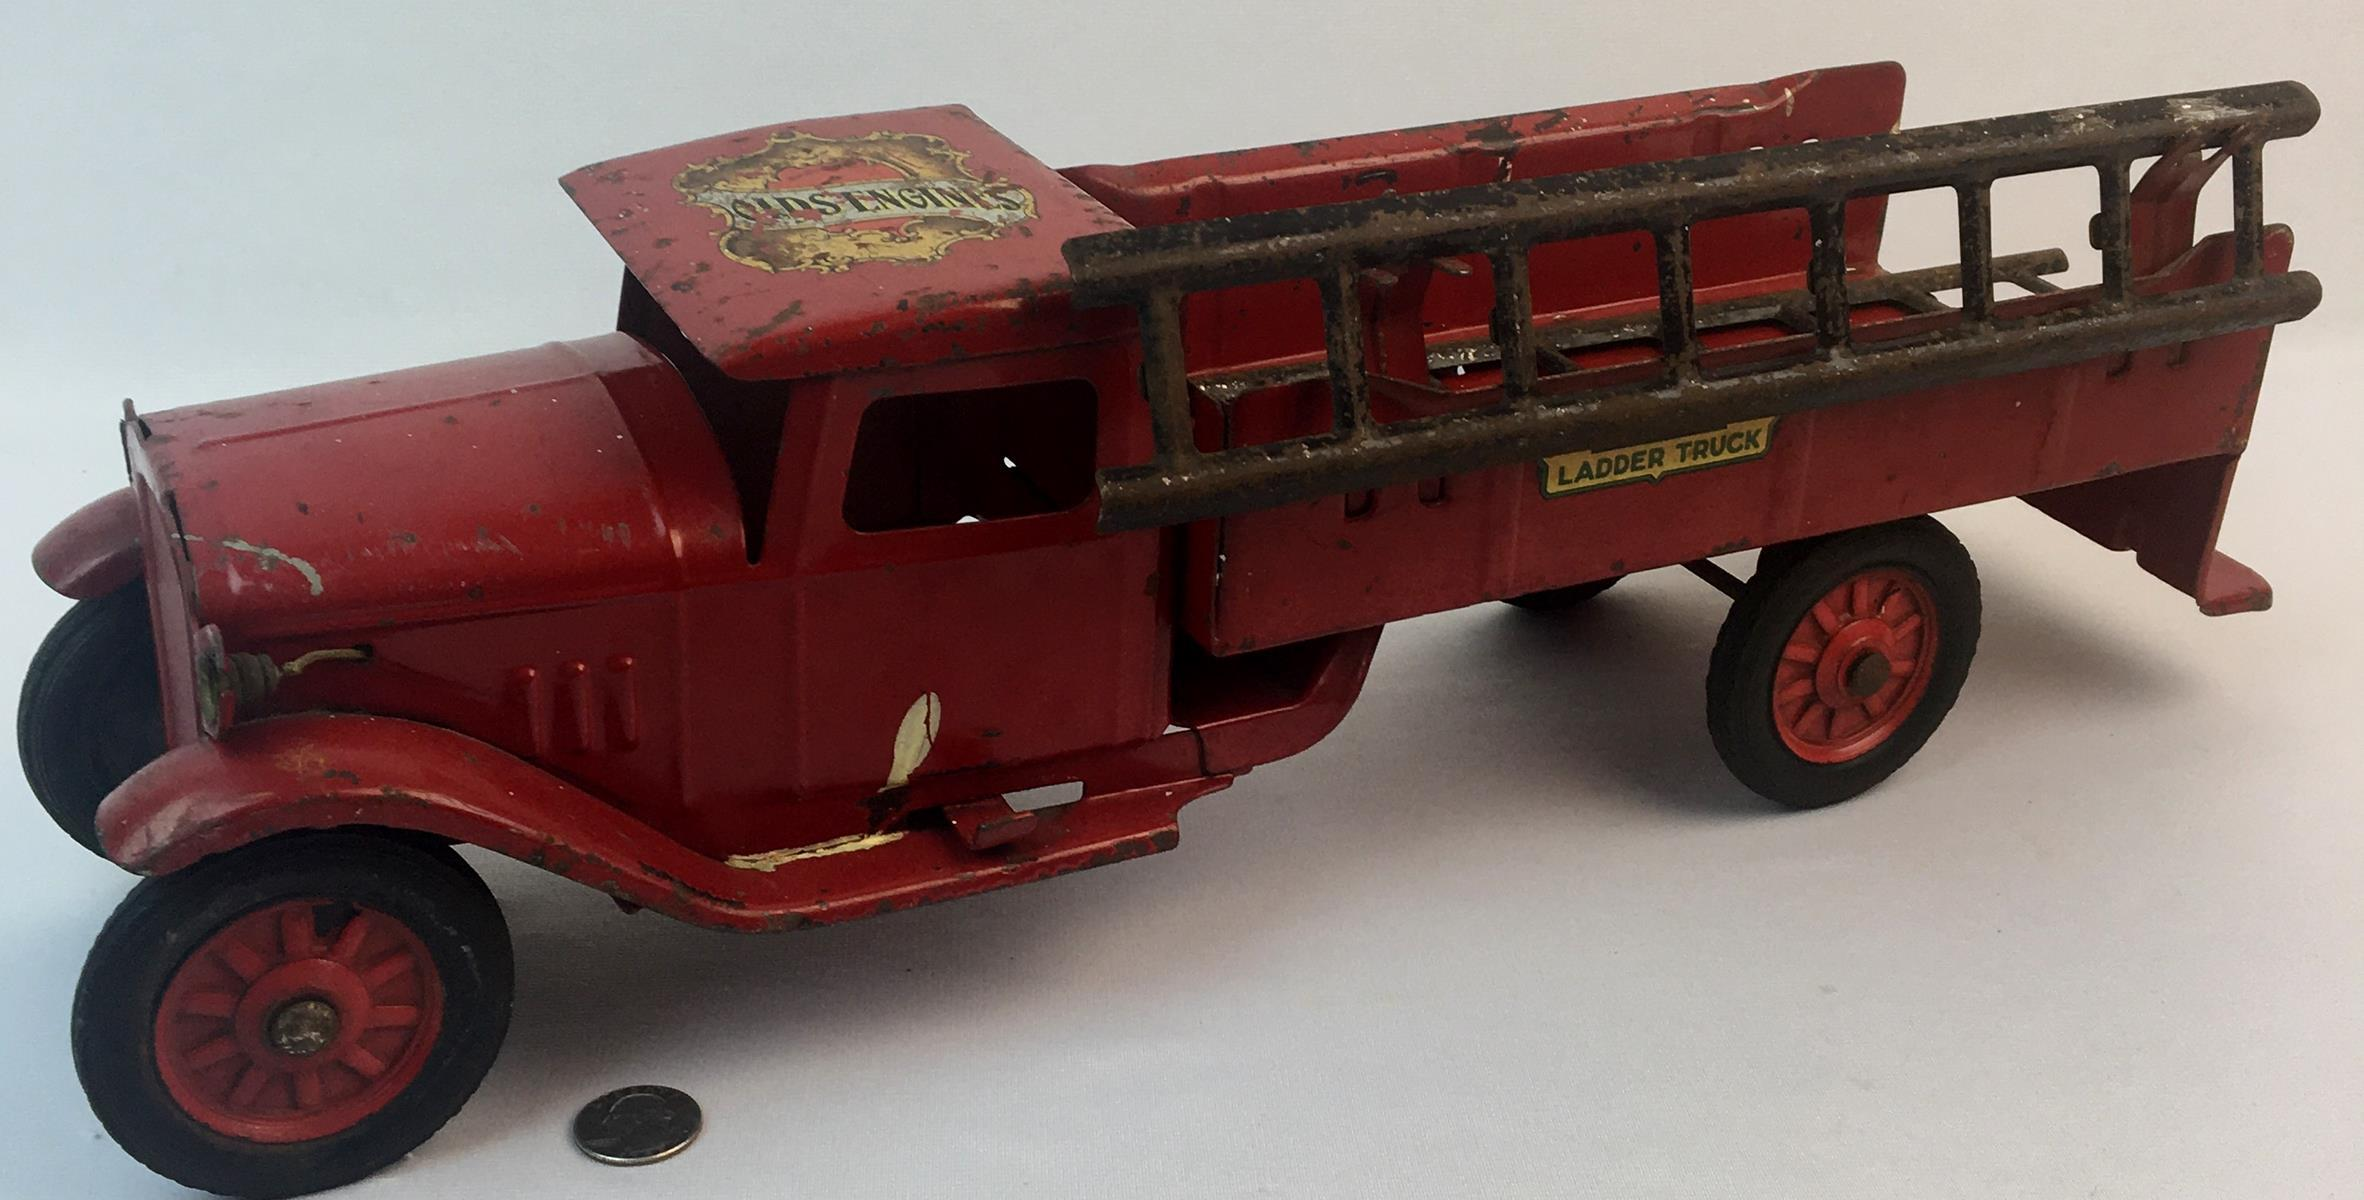 Antique 1930's Buddy L Pressed Steel Red Ladder Truck w/ Battery Operated Headlights